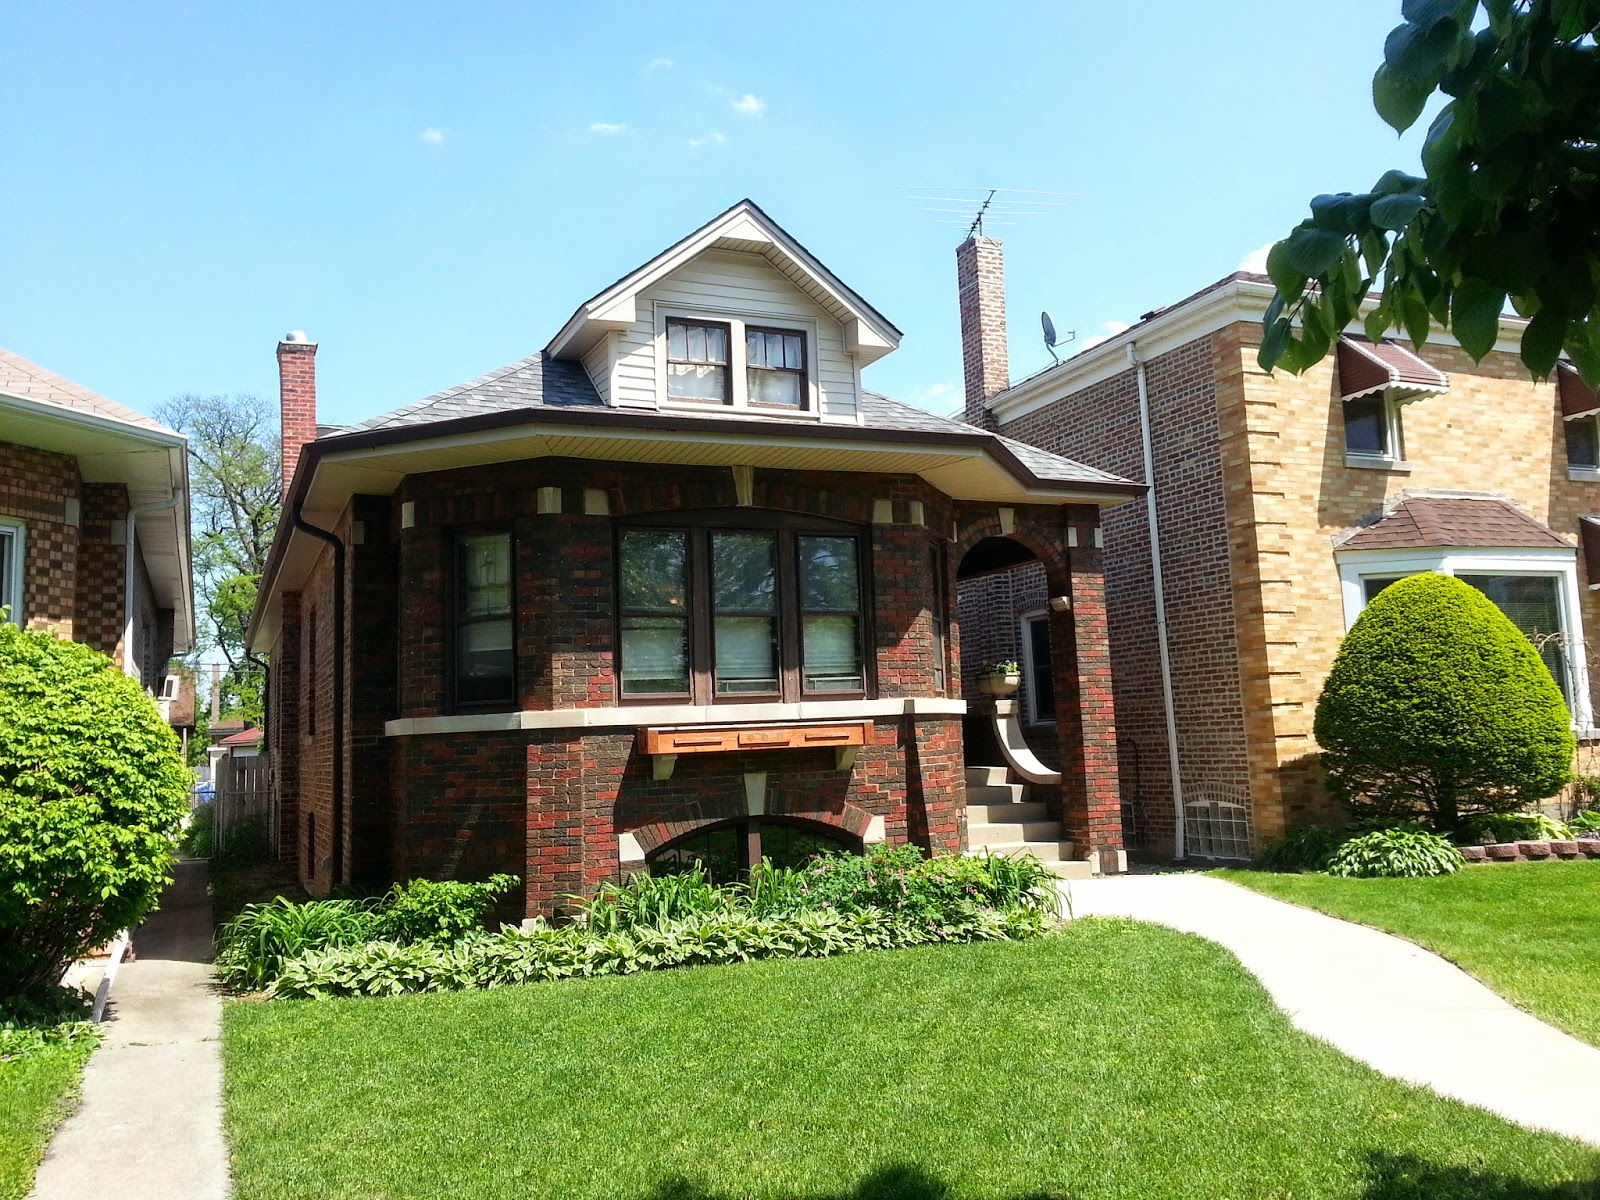 The chicago real estate local rented galewood house with for Classic chicago house